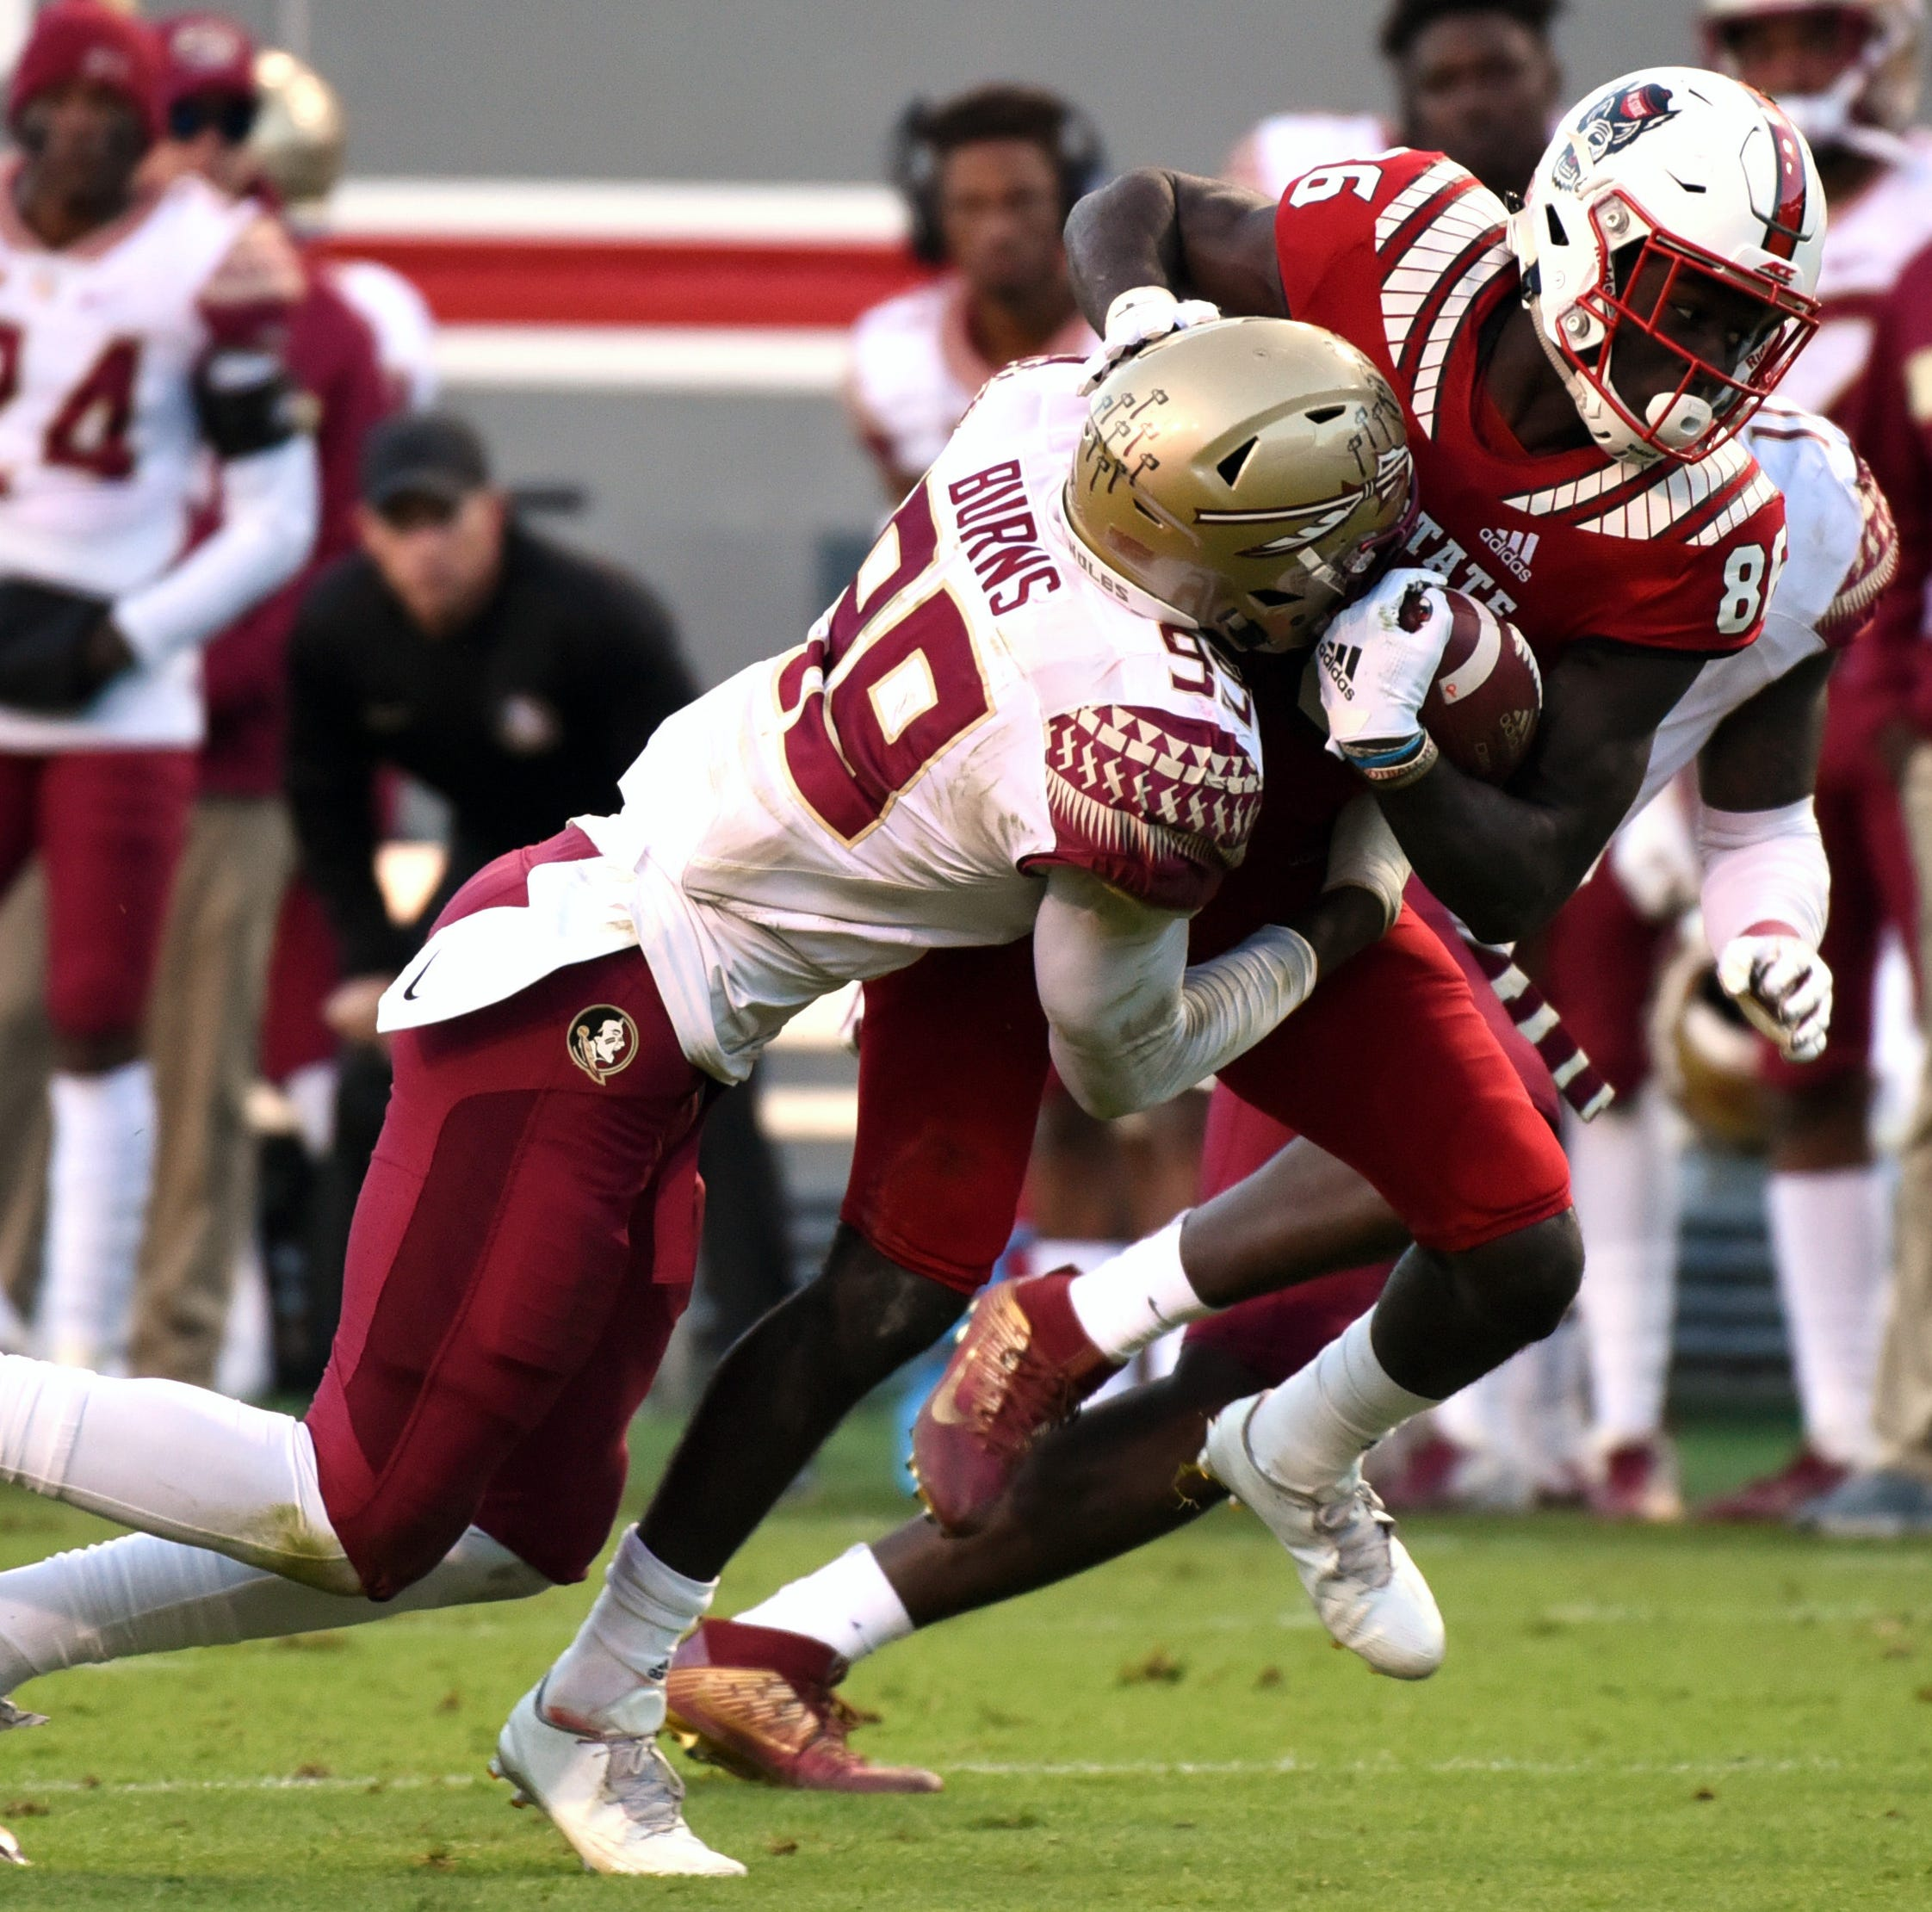 Florida State NFL Draft preview: What do mock drafts predict for Brian Burns?